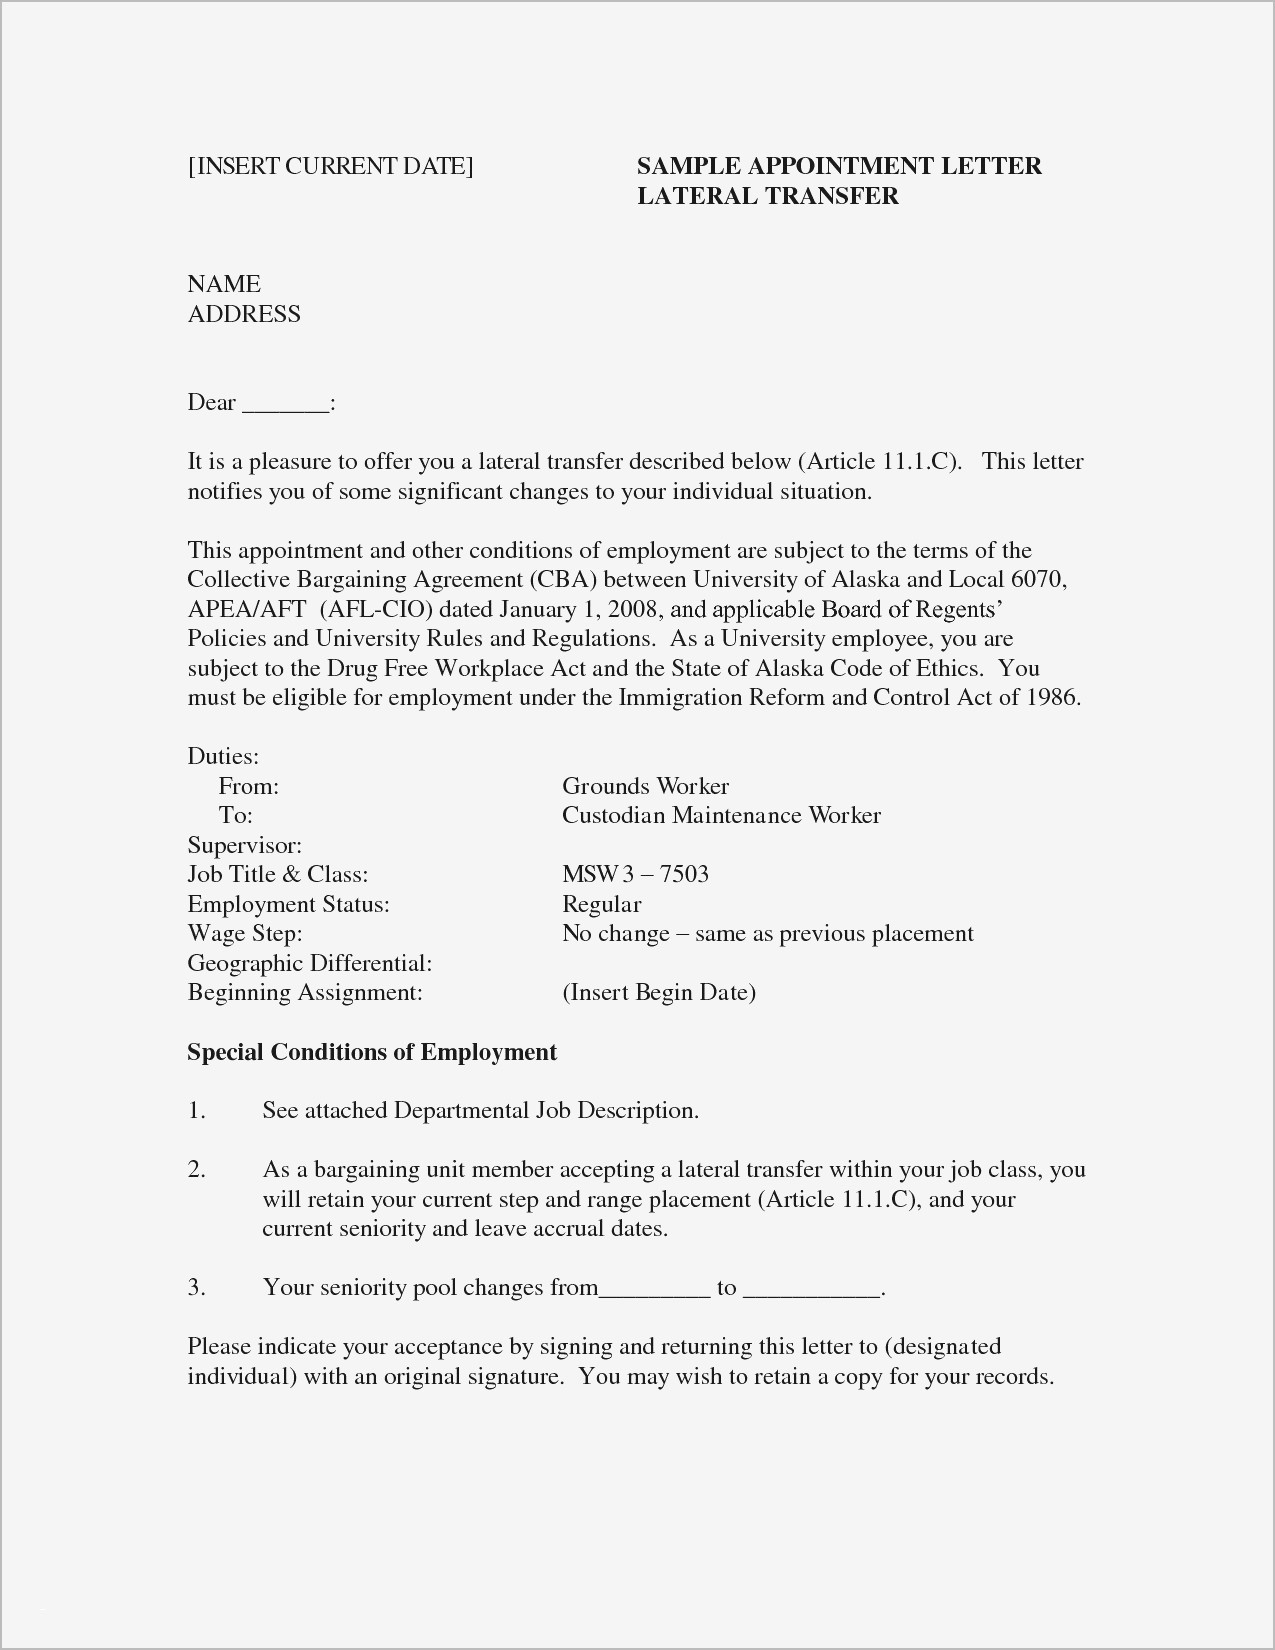 Masters Degree On Resume - Picture A Resume New Masters Degree Resume Free Templates Luxury